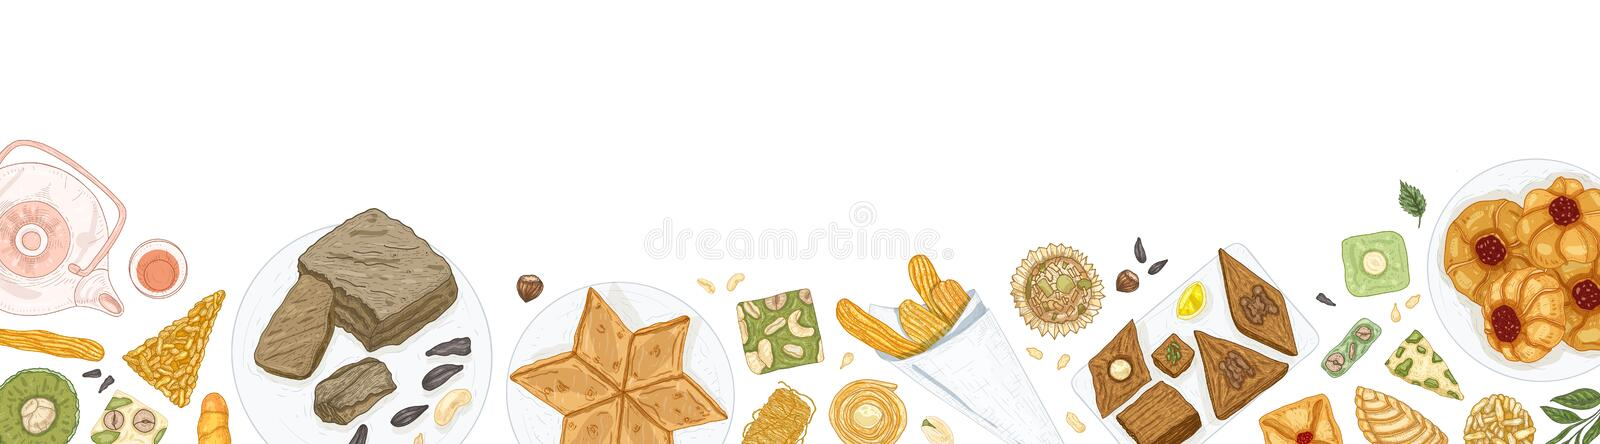 Horizontal banner template with oriental sweets on plates at bottom edge. Traditional dessert meals, tasty confections. Delicious pastry food on white vector illustration